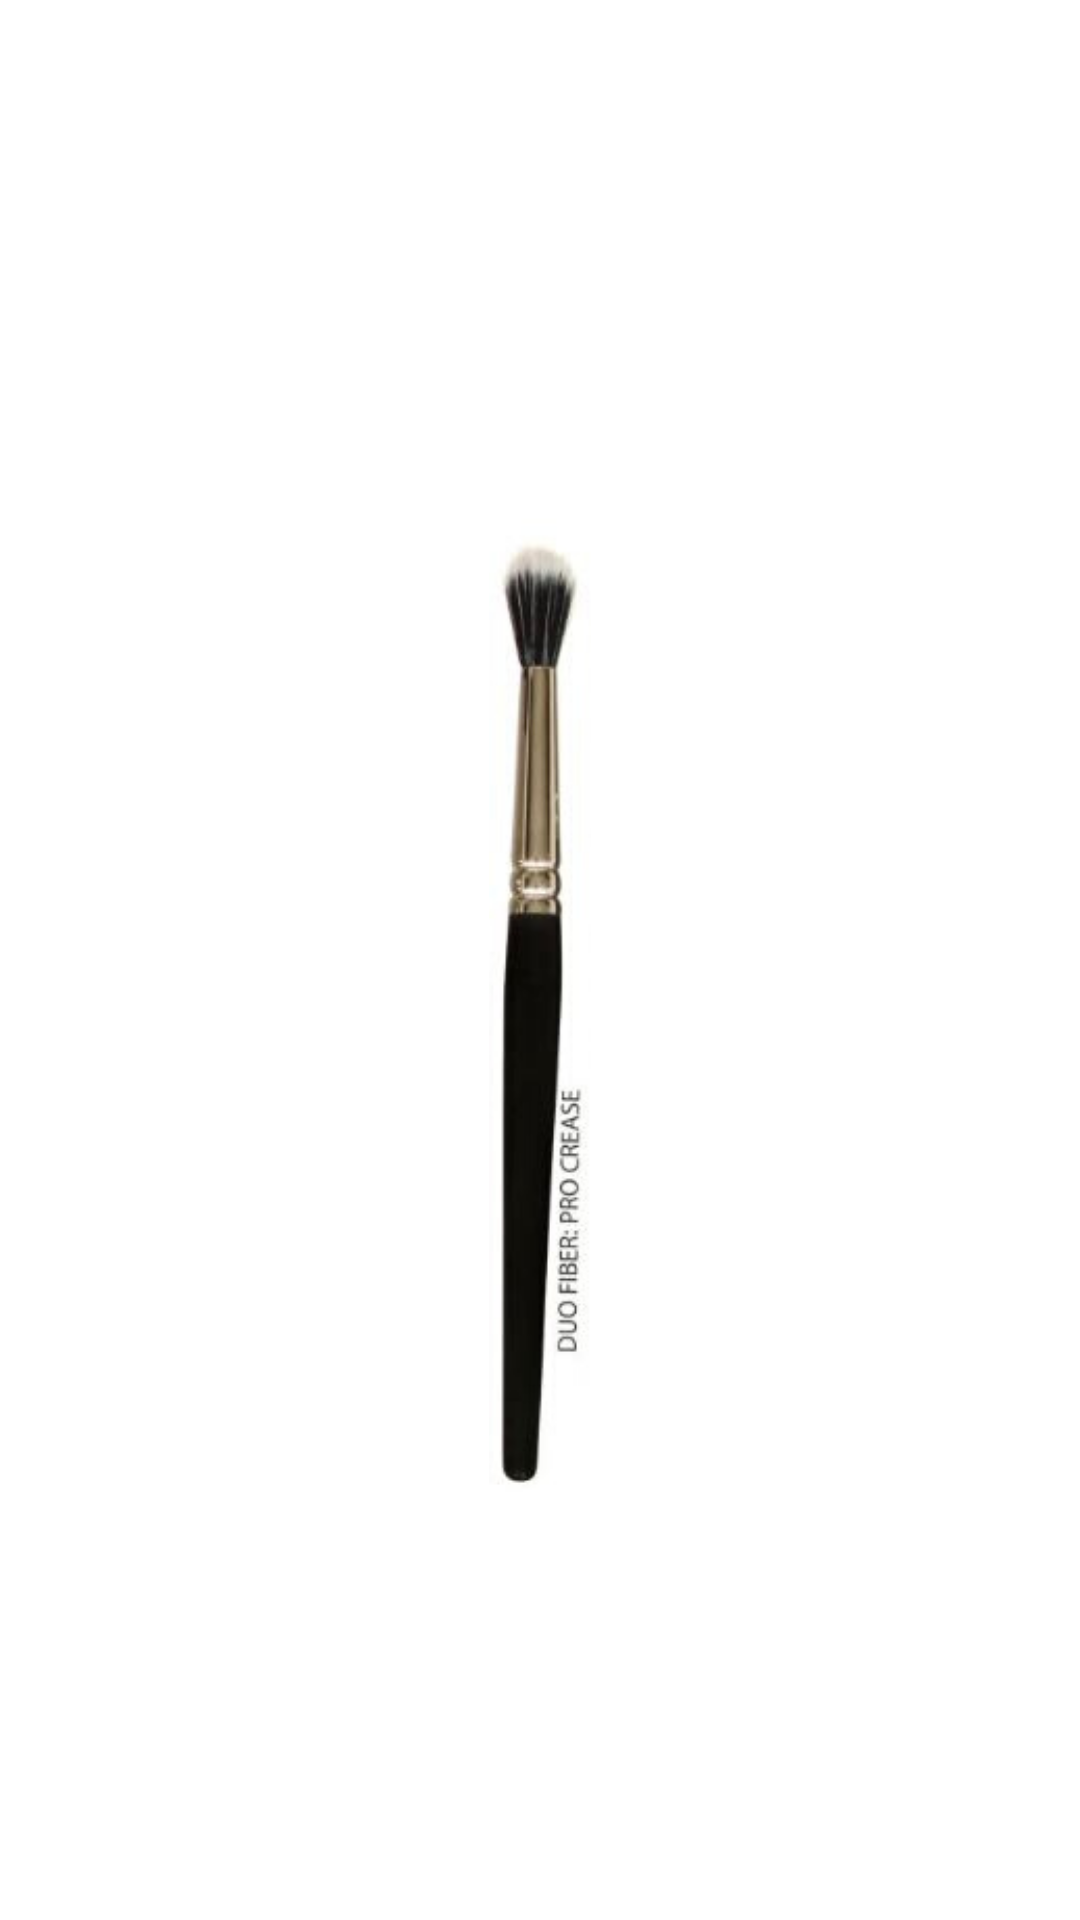 Duo Fiber Crease Brush